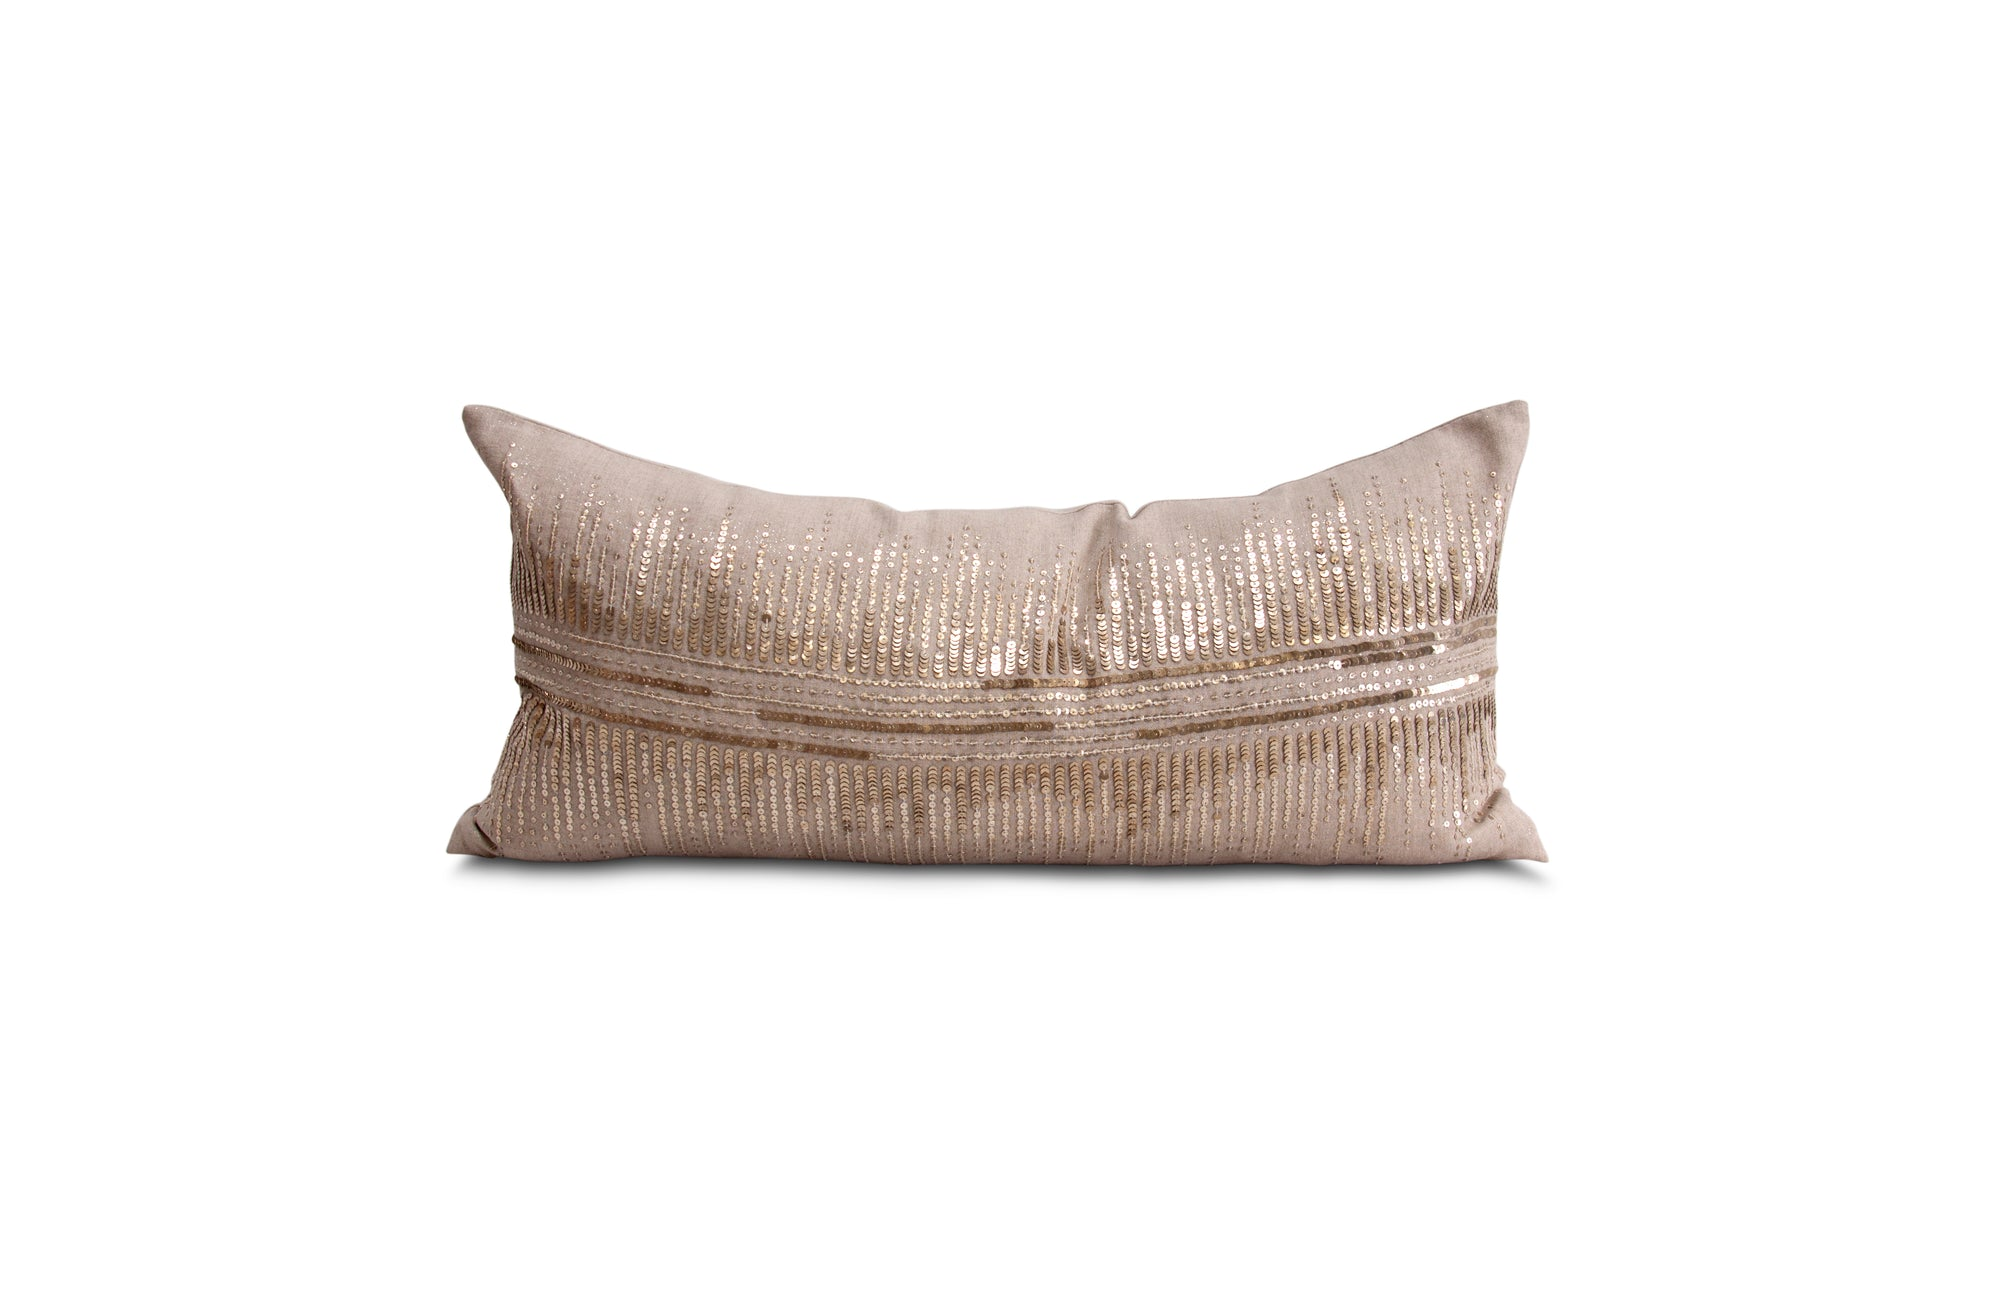 Vionnet Pillow - Champagne & Natural